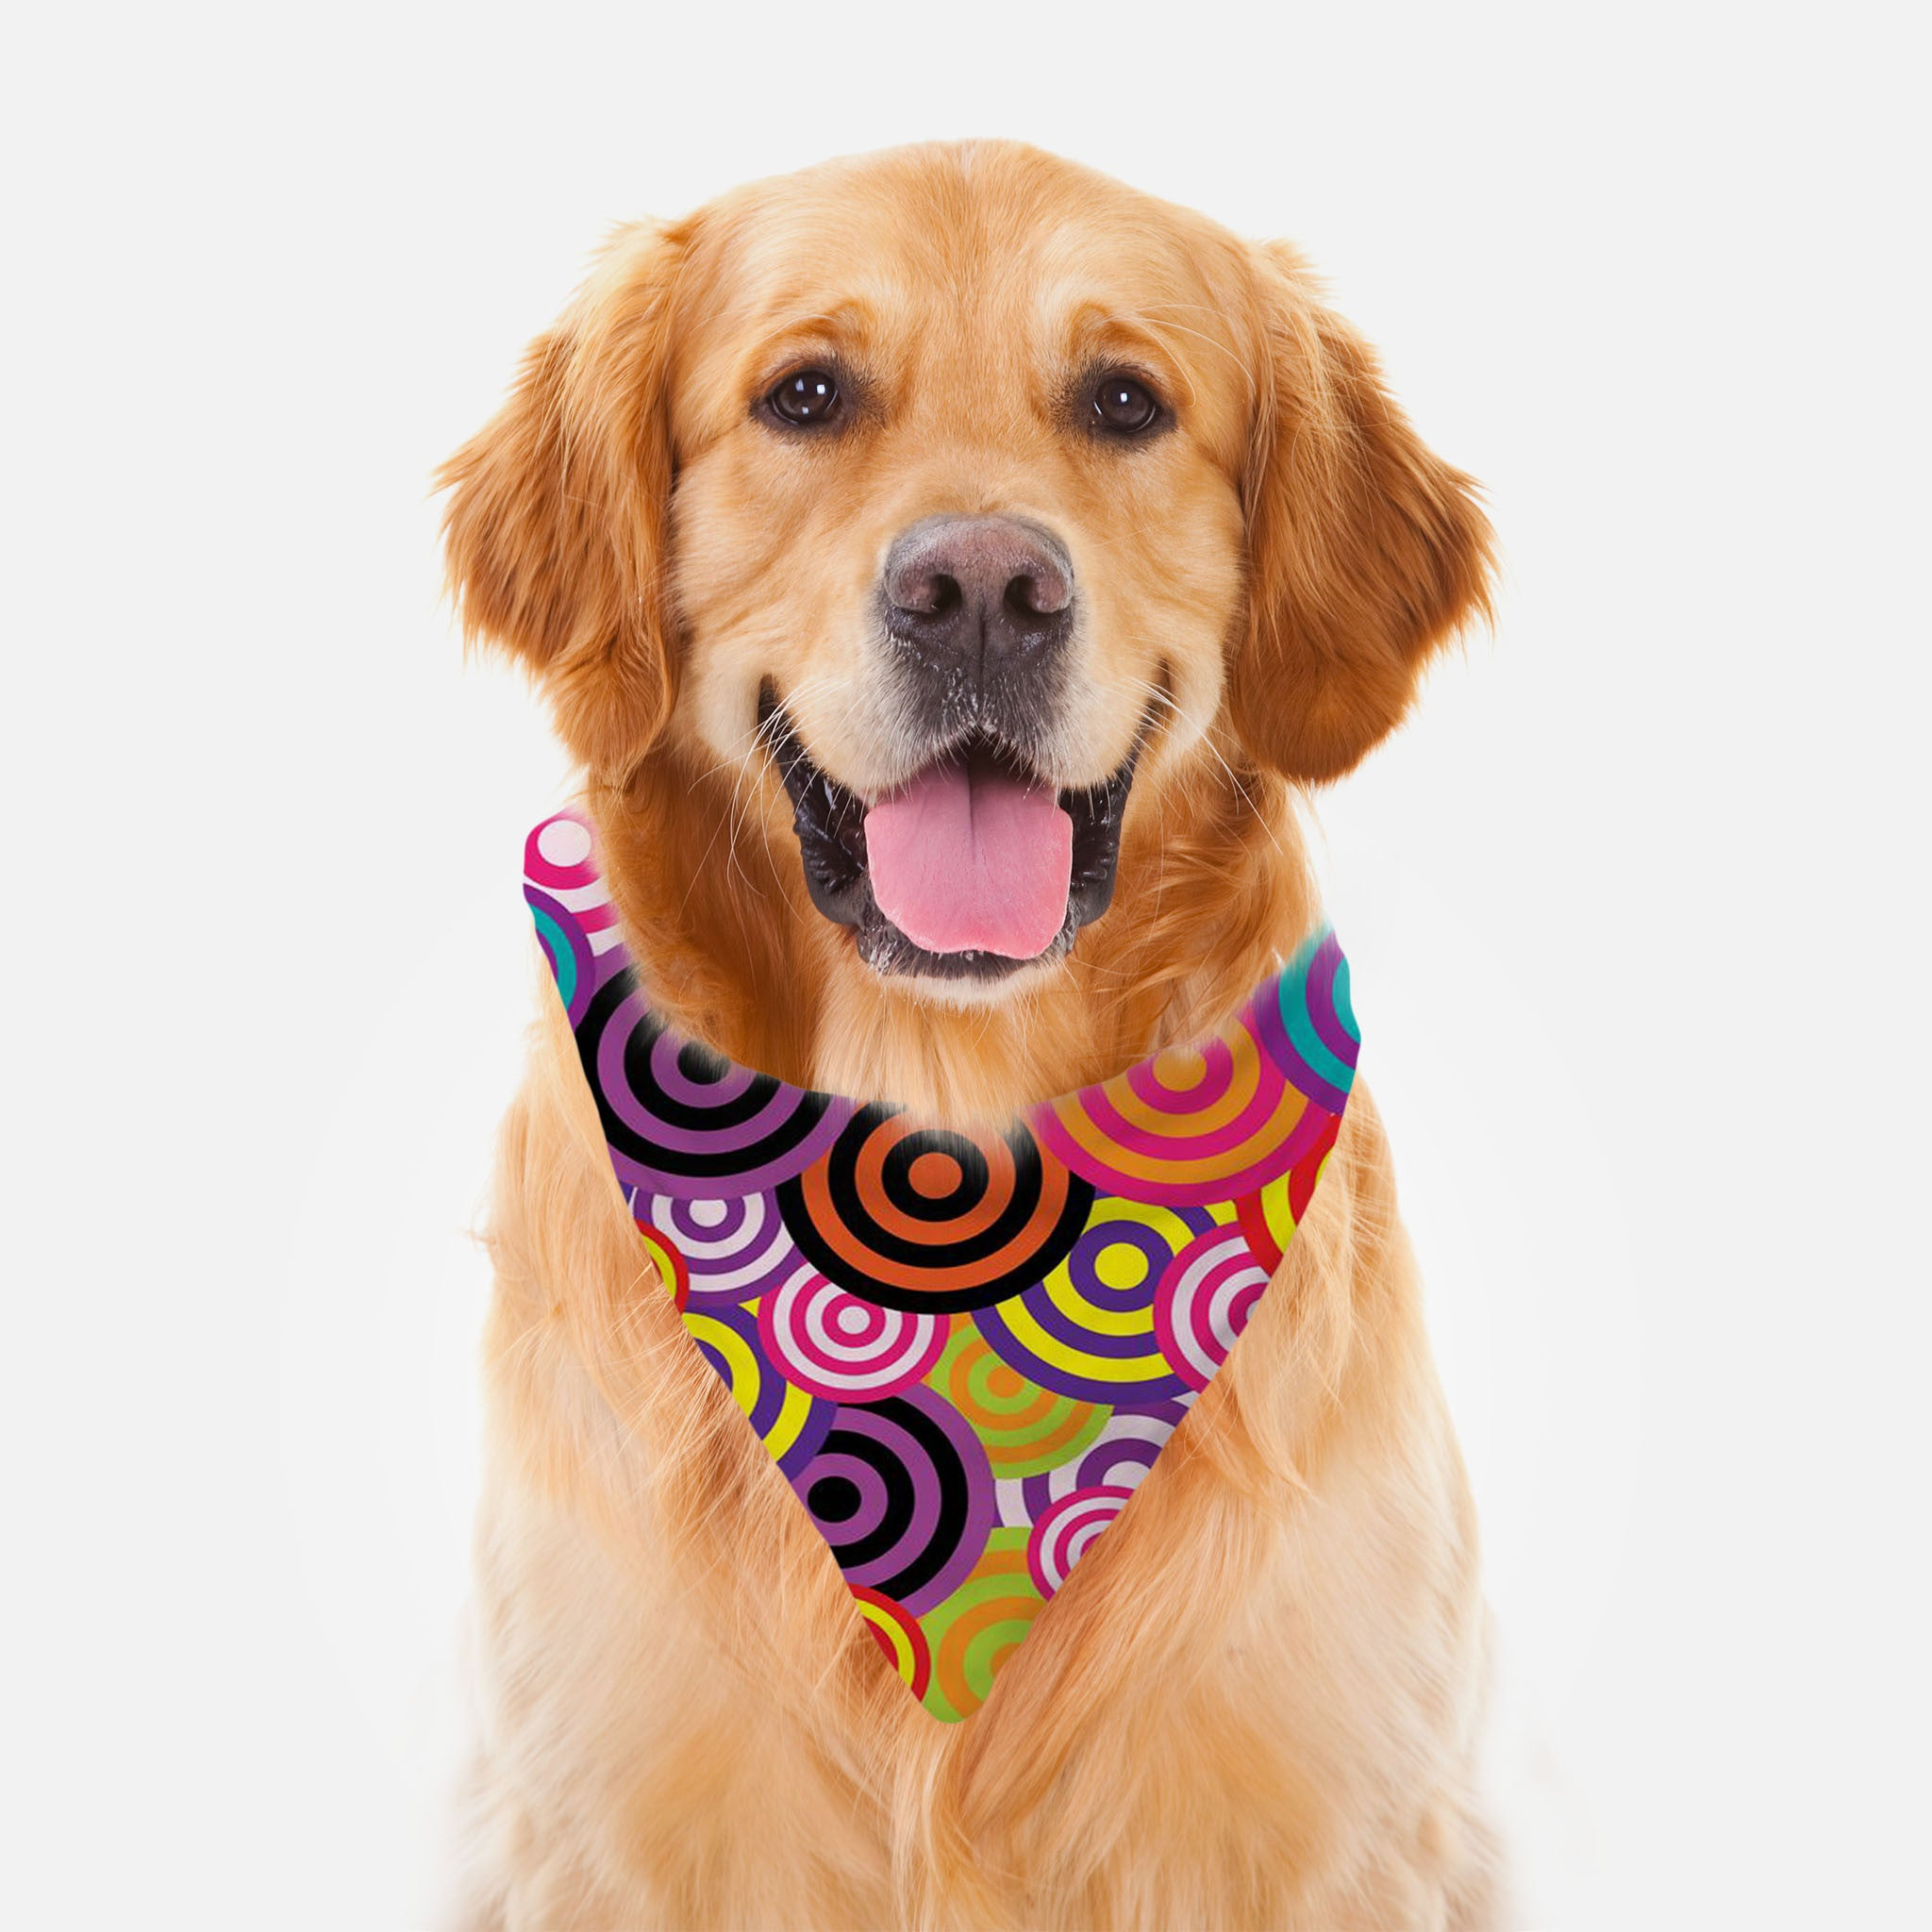 Rainbow Bullseye Ruff Riders Pet Bandana by JoJo (1170018-RR-B) - I WEAR JOJO